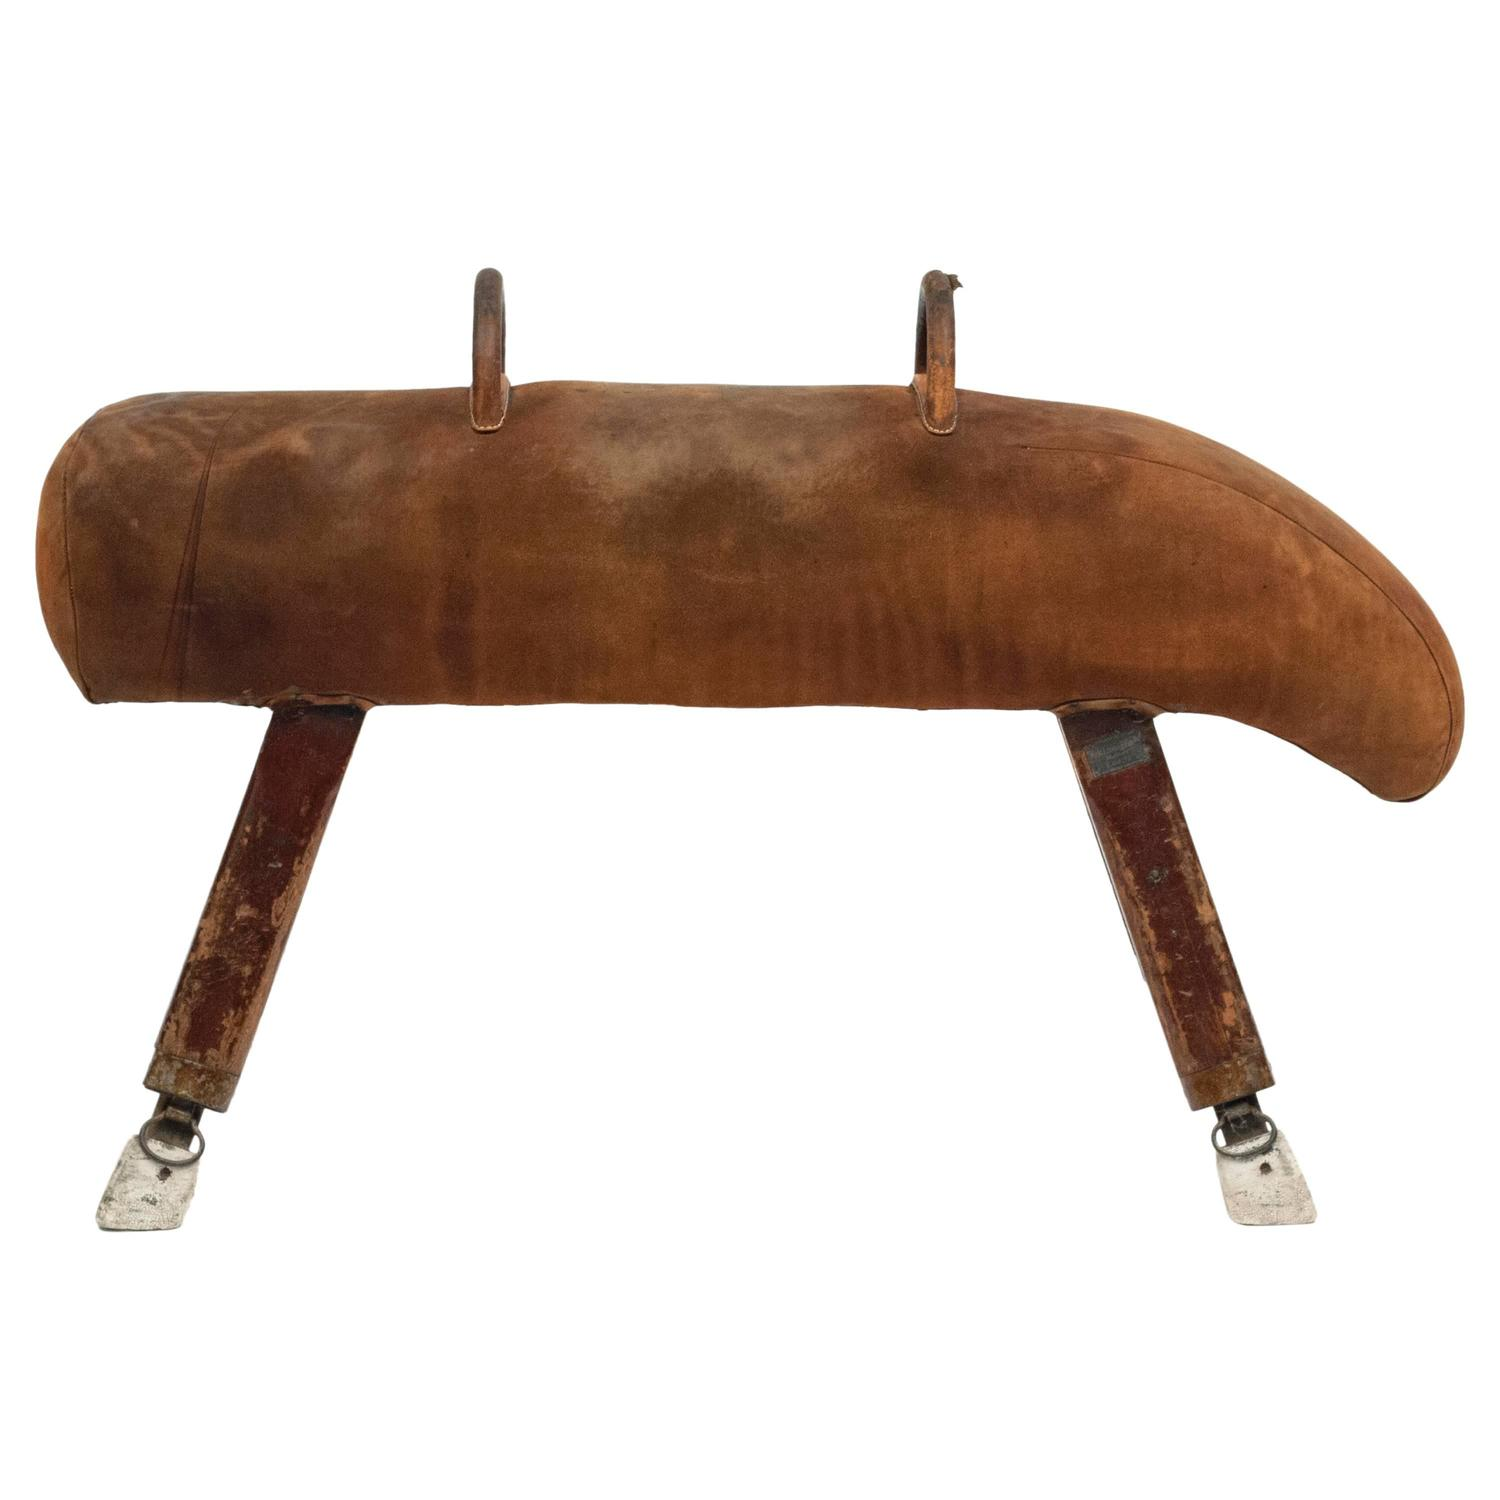 Inspirational Leather Furniture for Sale